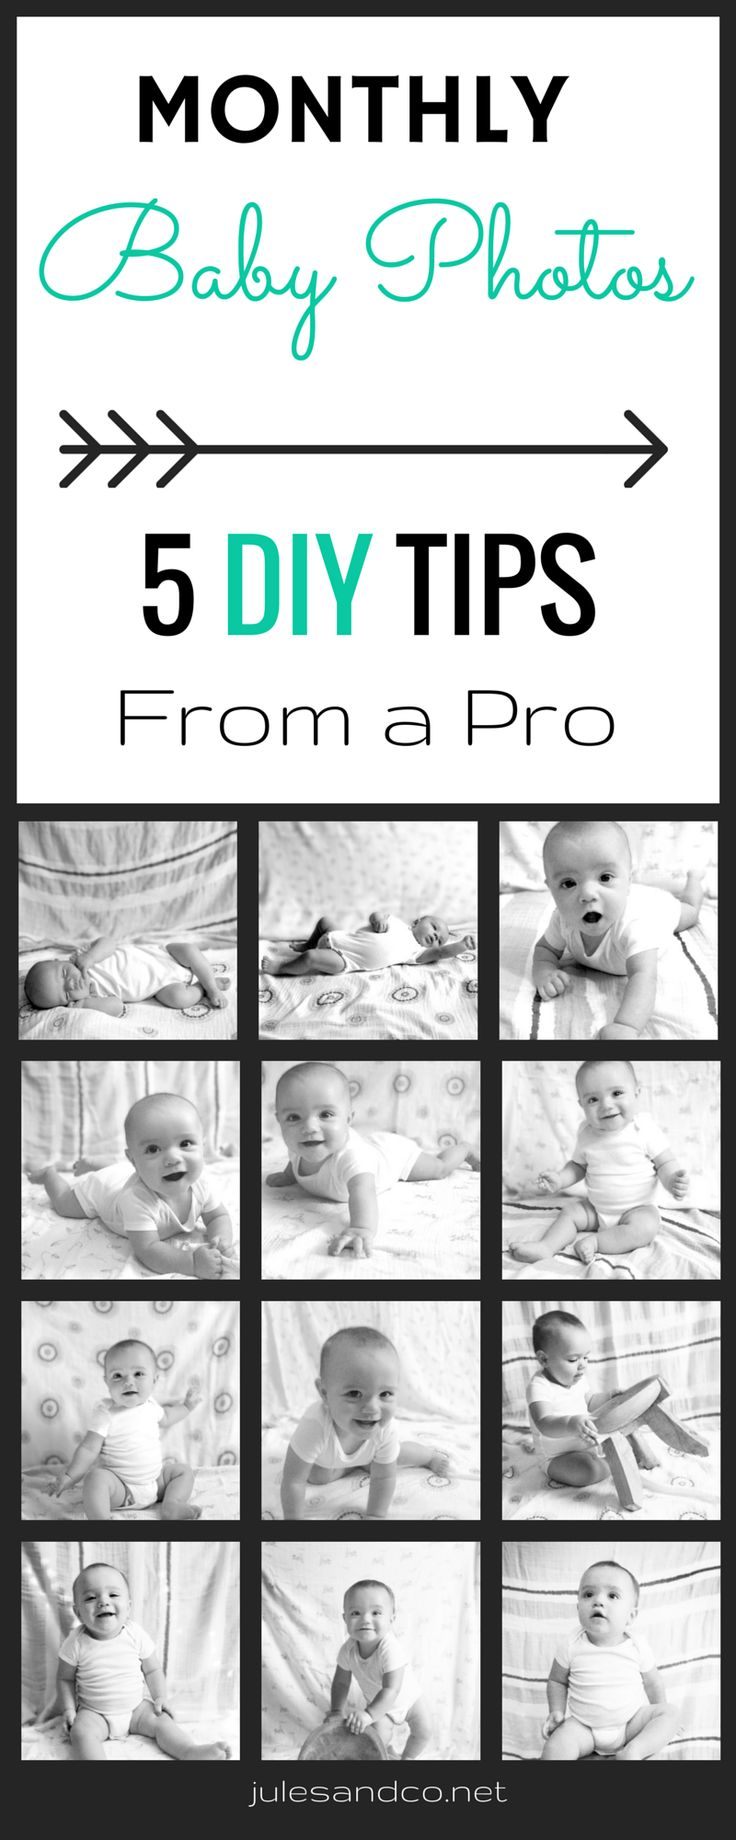 Monthly Baby Photos (5 DIY Tips From a Pro) | Caputre your baby's first year in photos with these fail-proof baby photography tips! | julesandco.net